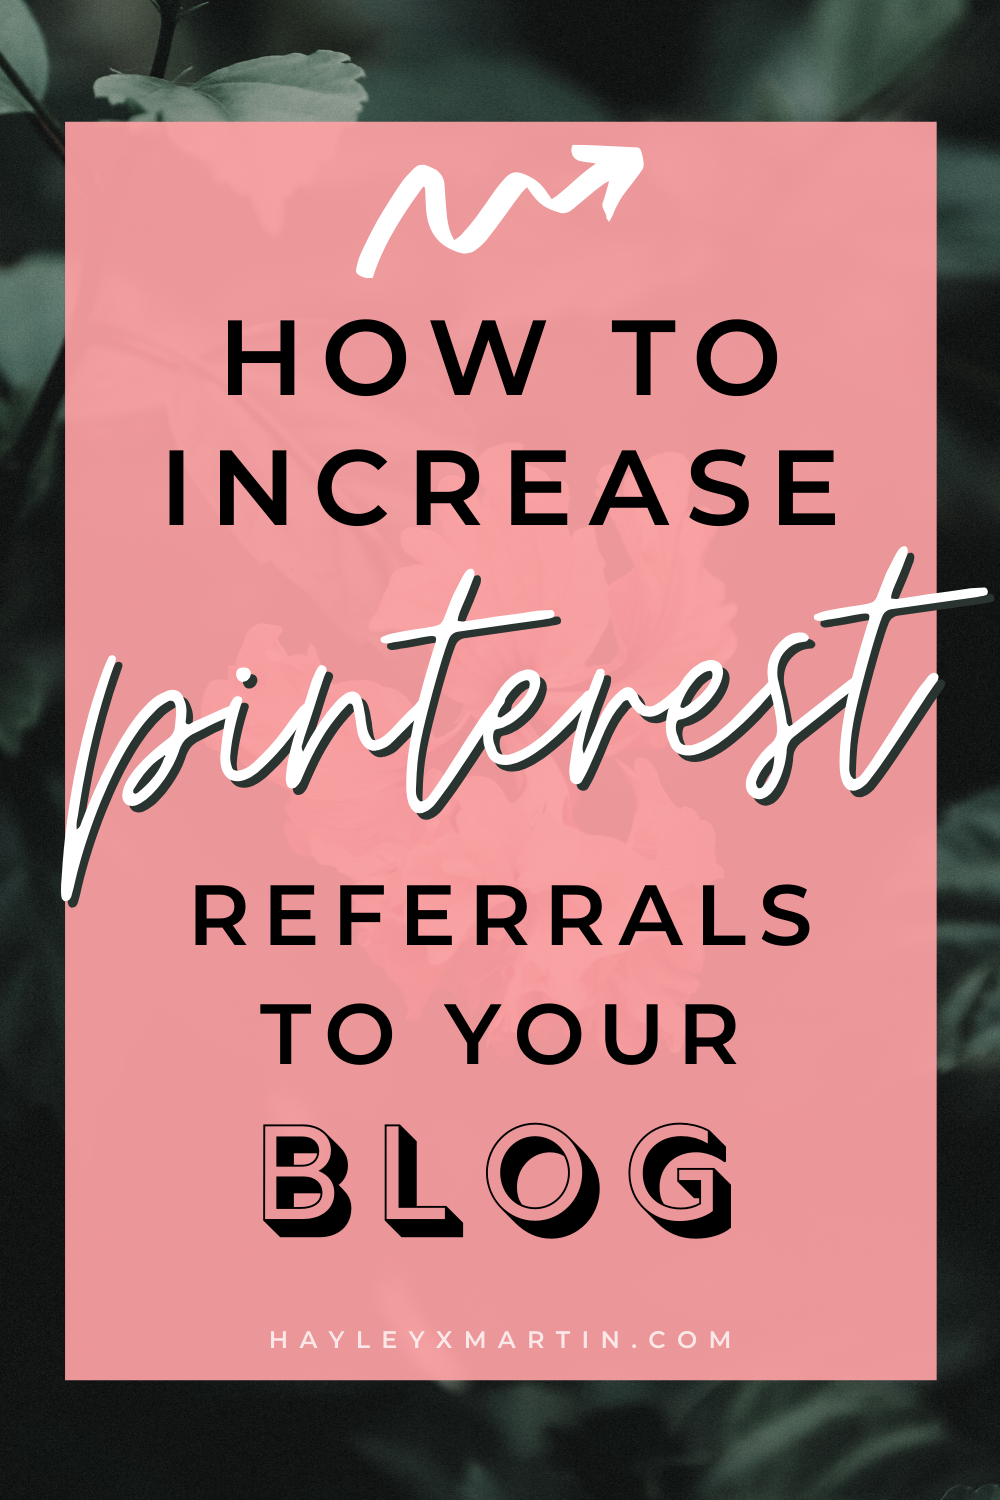 HOW TO INCREASE PINTEREST REFERRALS TO YOUR BLOG | HAYLEYXMARTIN